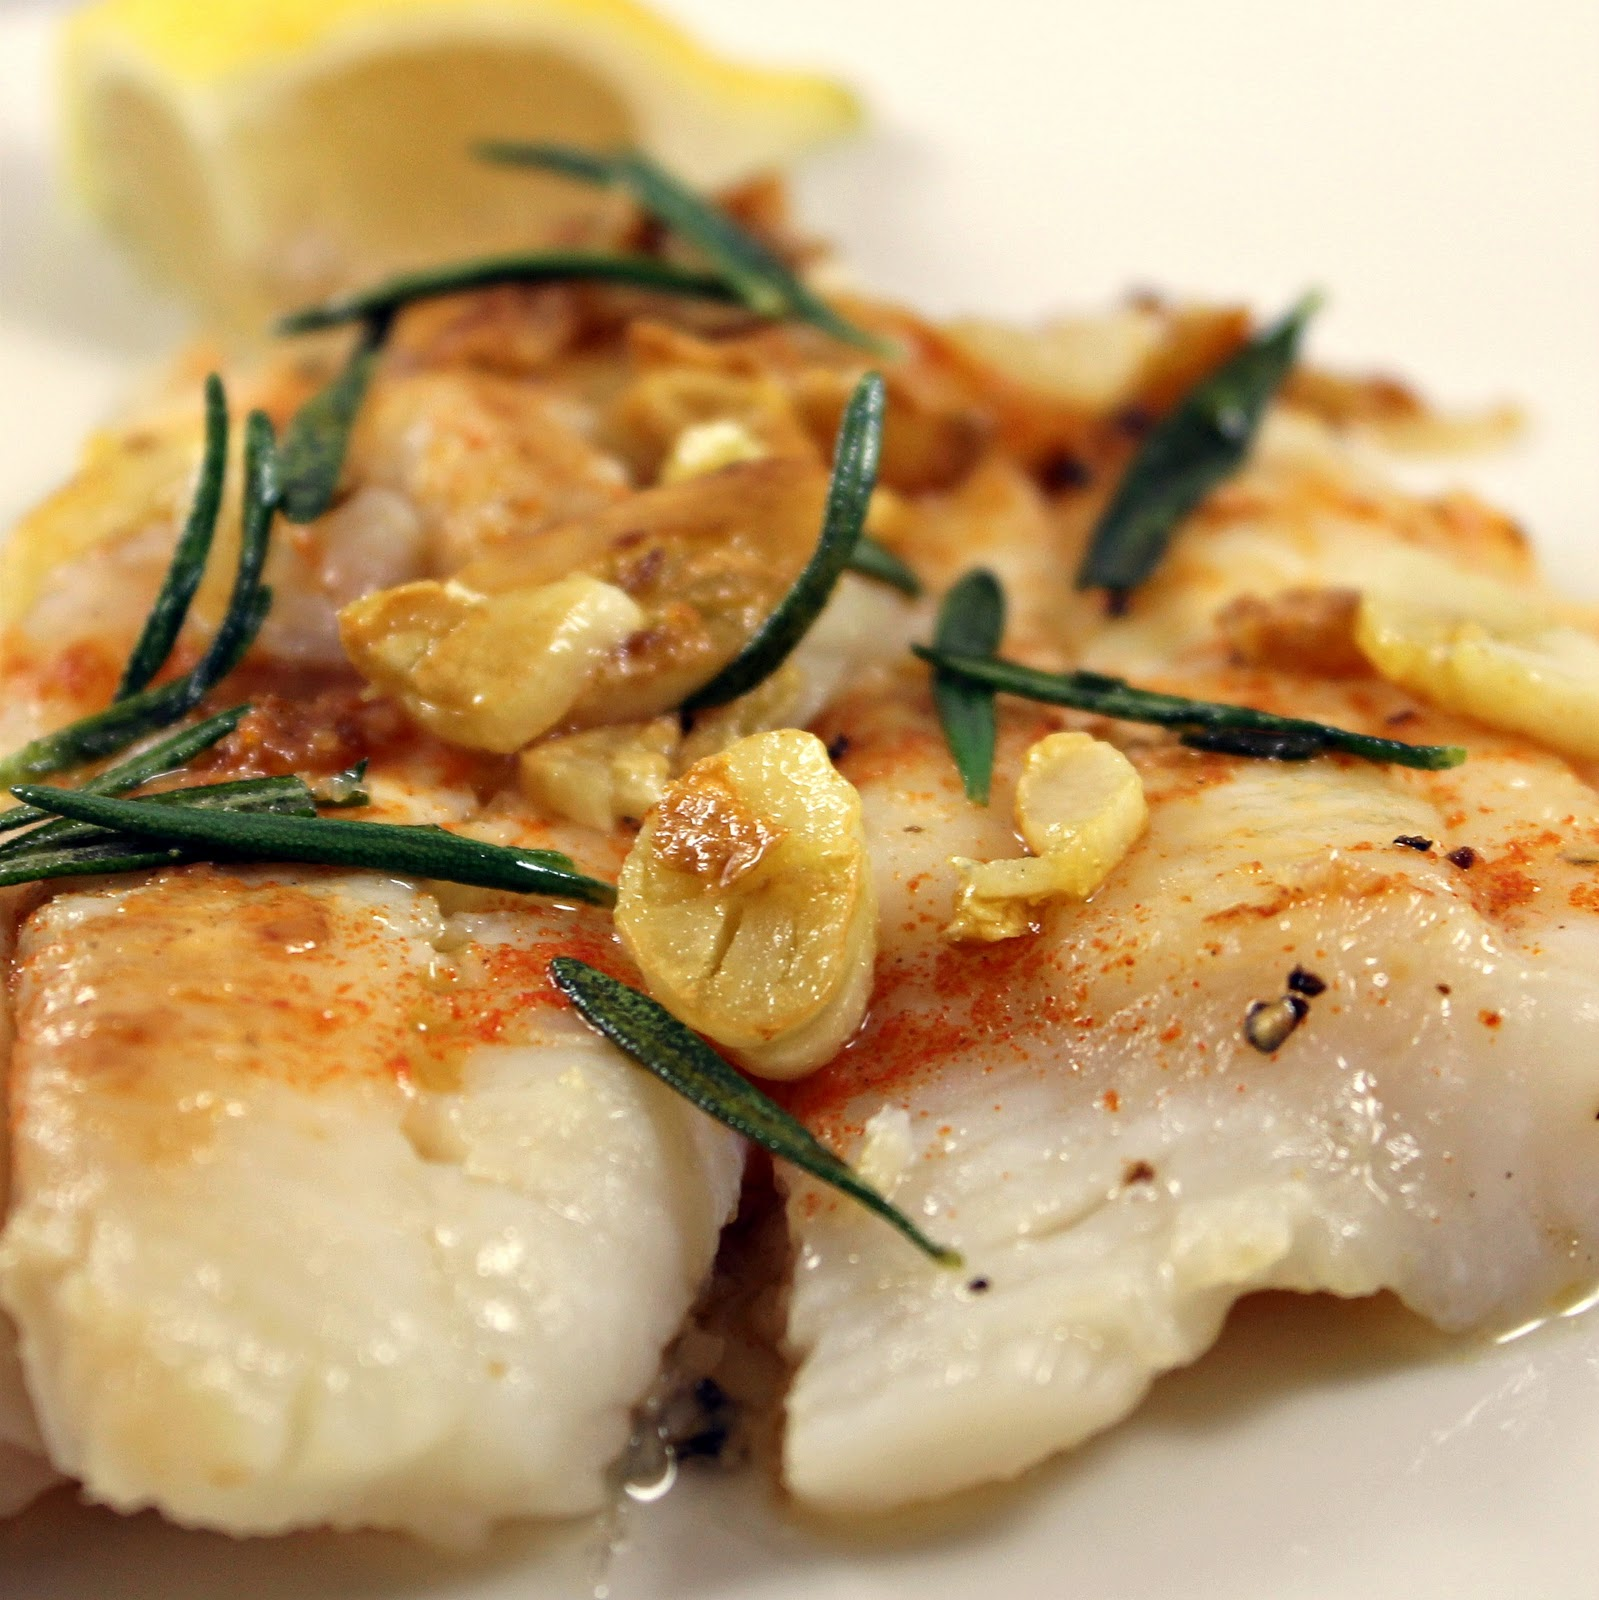 Flounder had a wonderful buttery flavor that you can really taste in ...